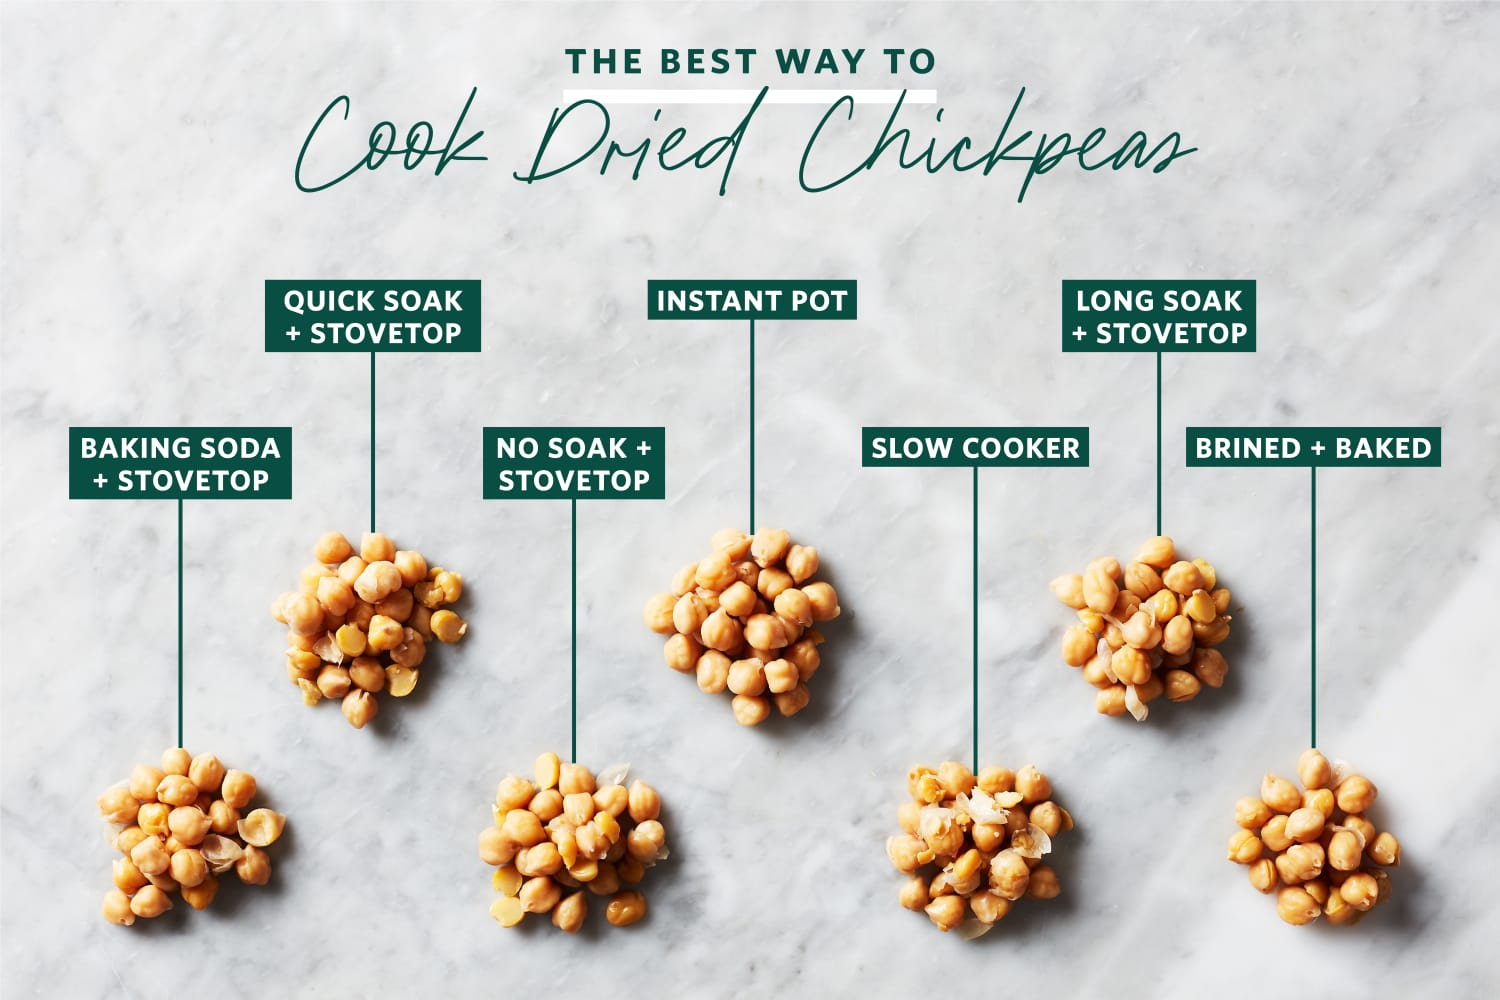 We Tried 7 Methods for Cooking Dried Chickpeas and the Winner Blinded Us with Science